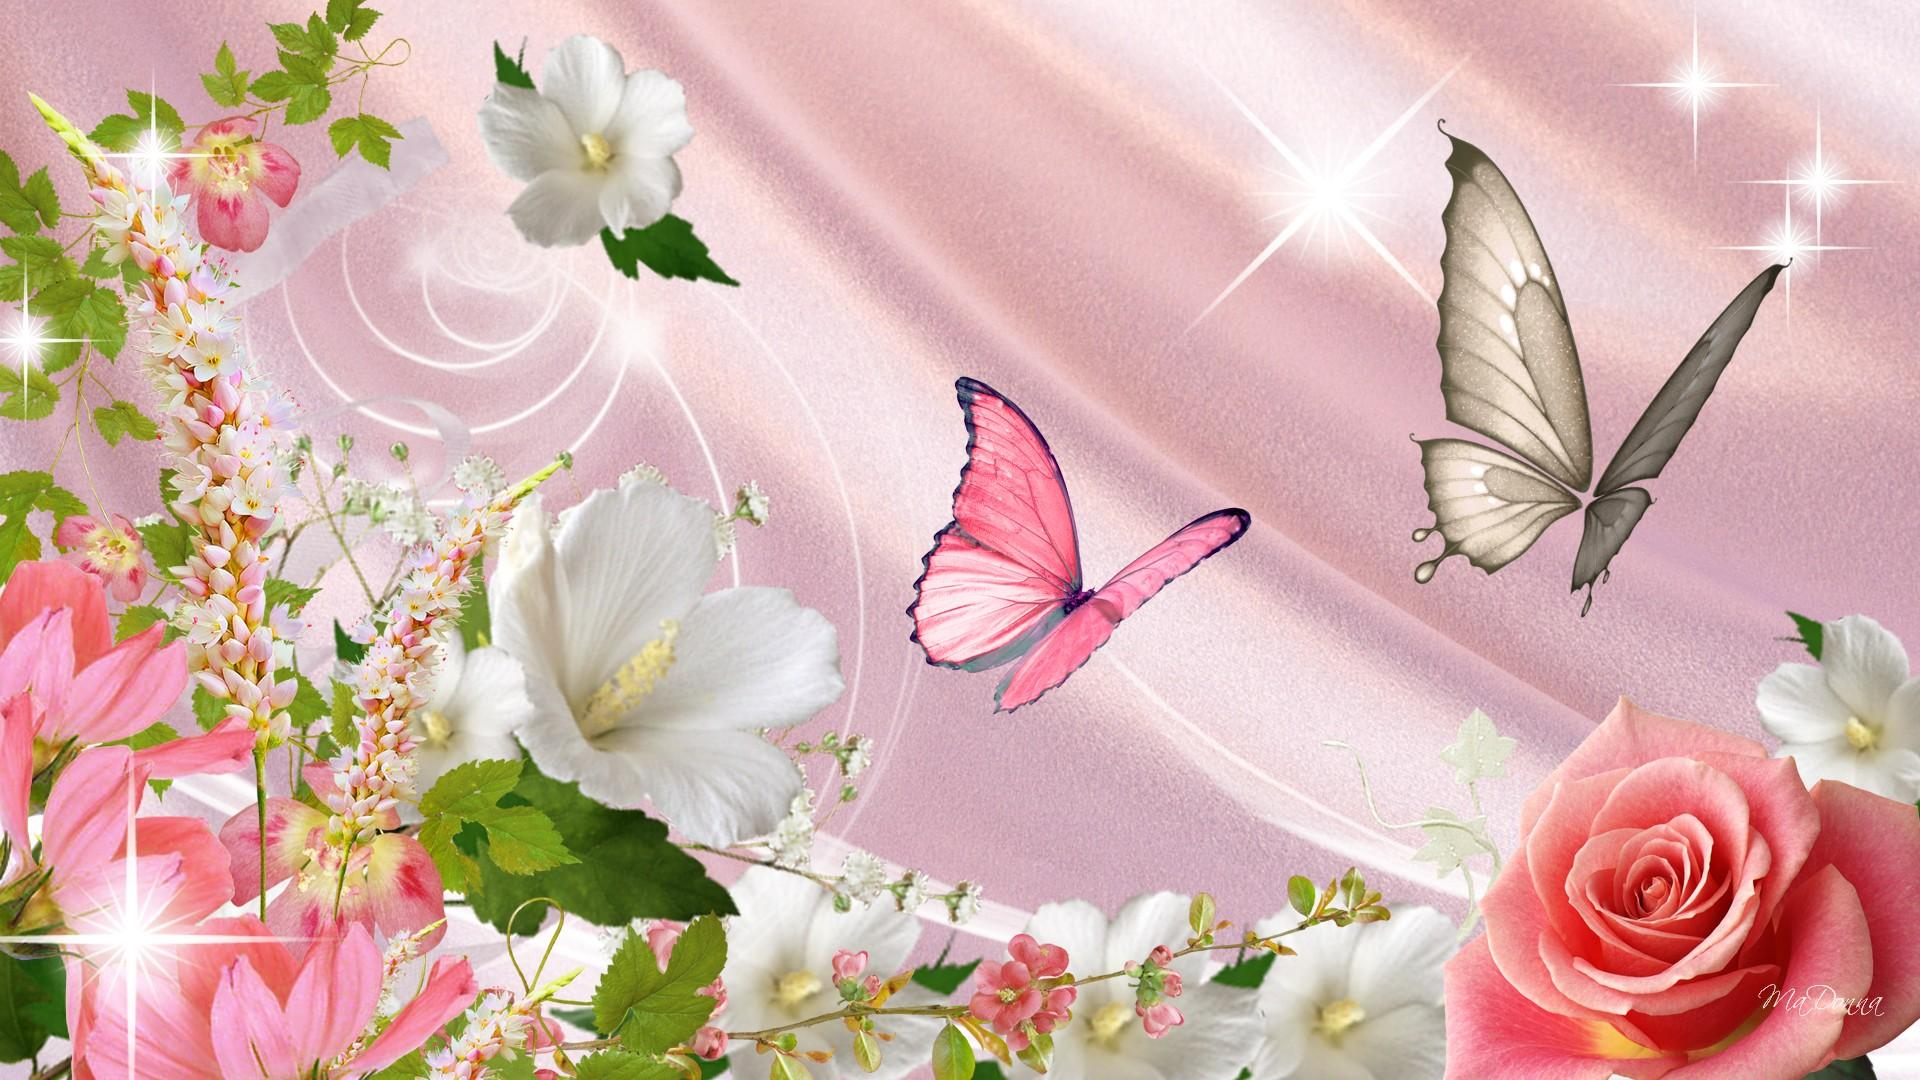 Flowers and butterflies wallpaper sf wallpaper butterfly and flower wallpaper wallpapersafari mightylinksfo